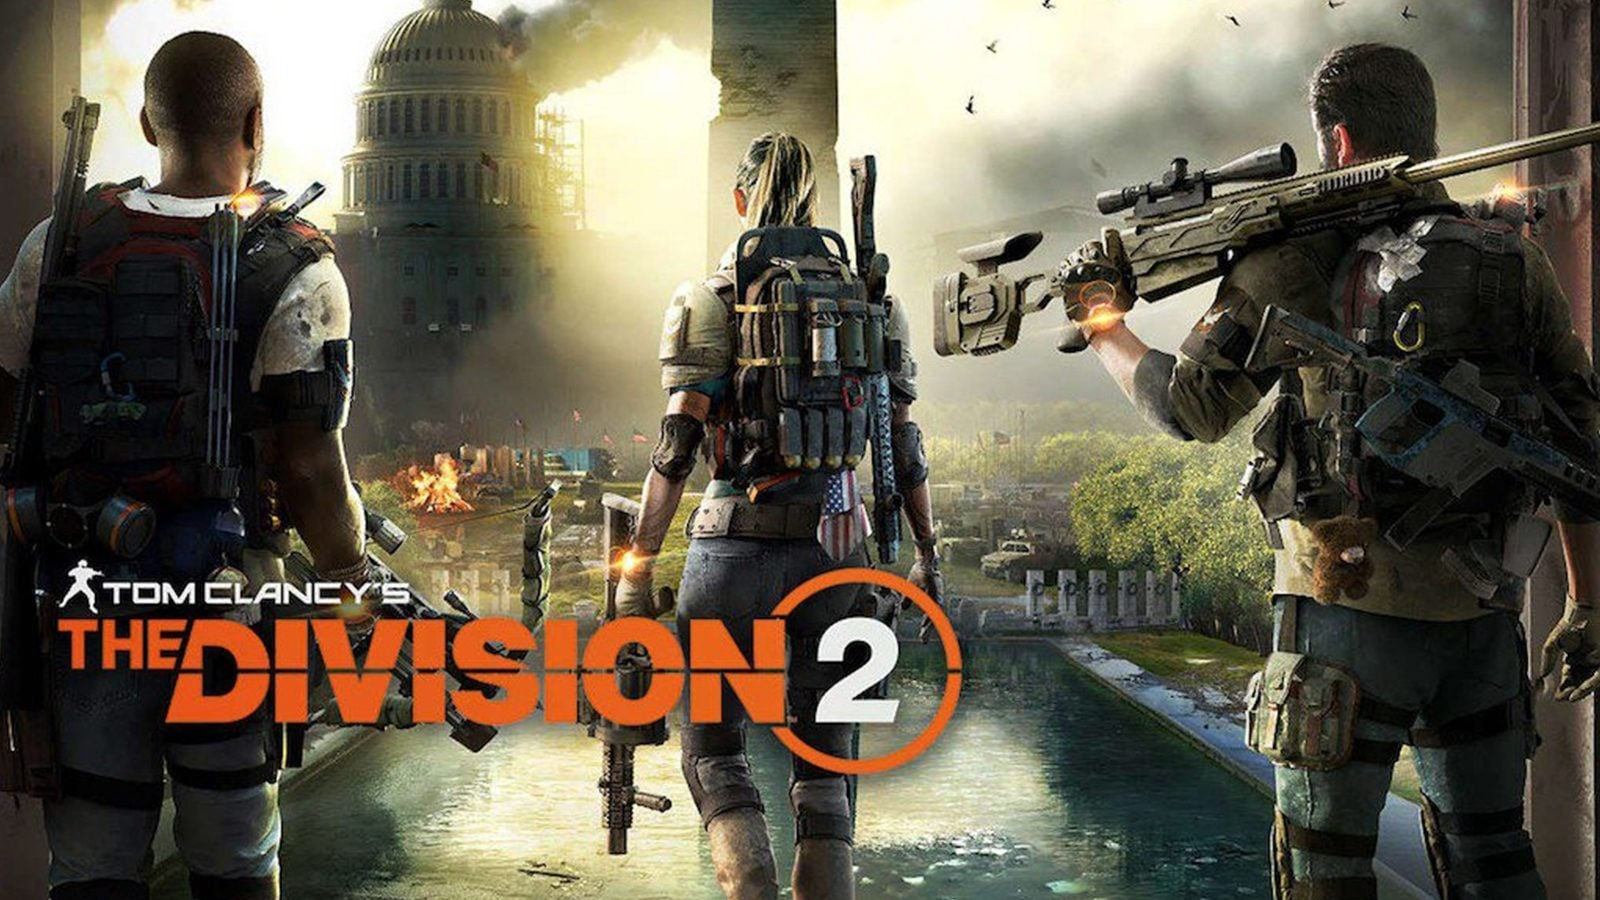 The Division 2 New Update 1.08 Patch Notes Update 3.1 PS4, Xbox One, PC